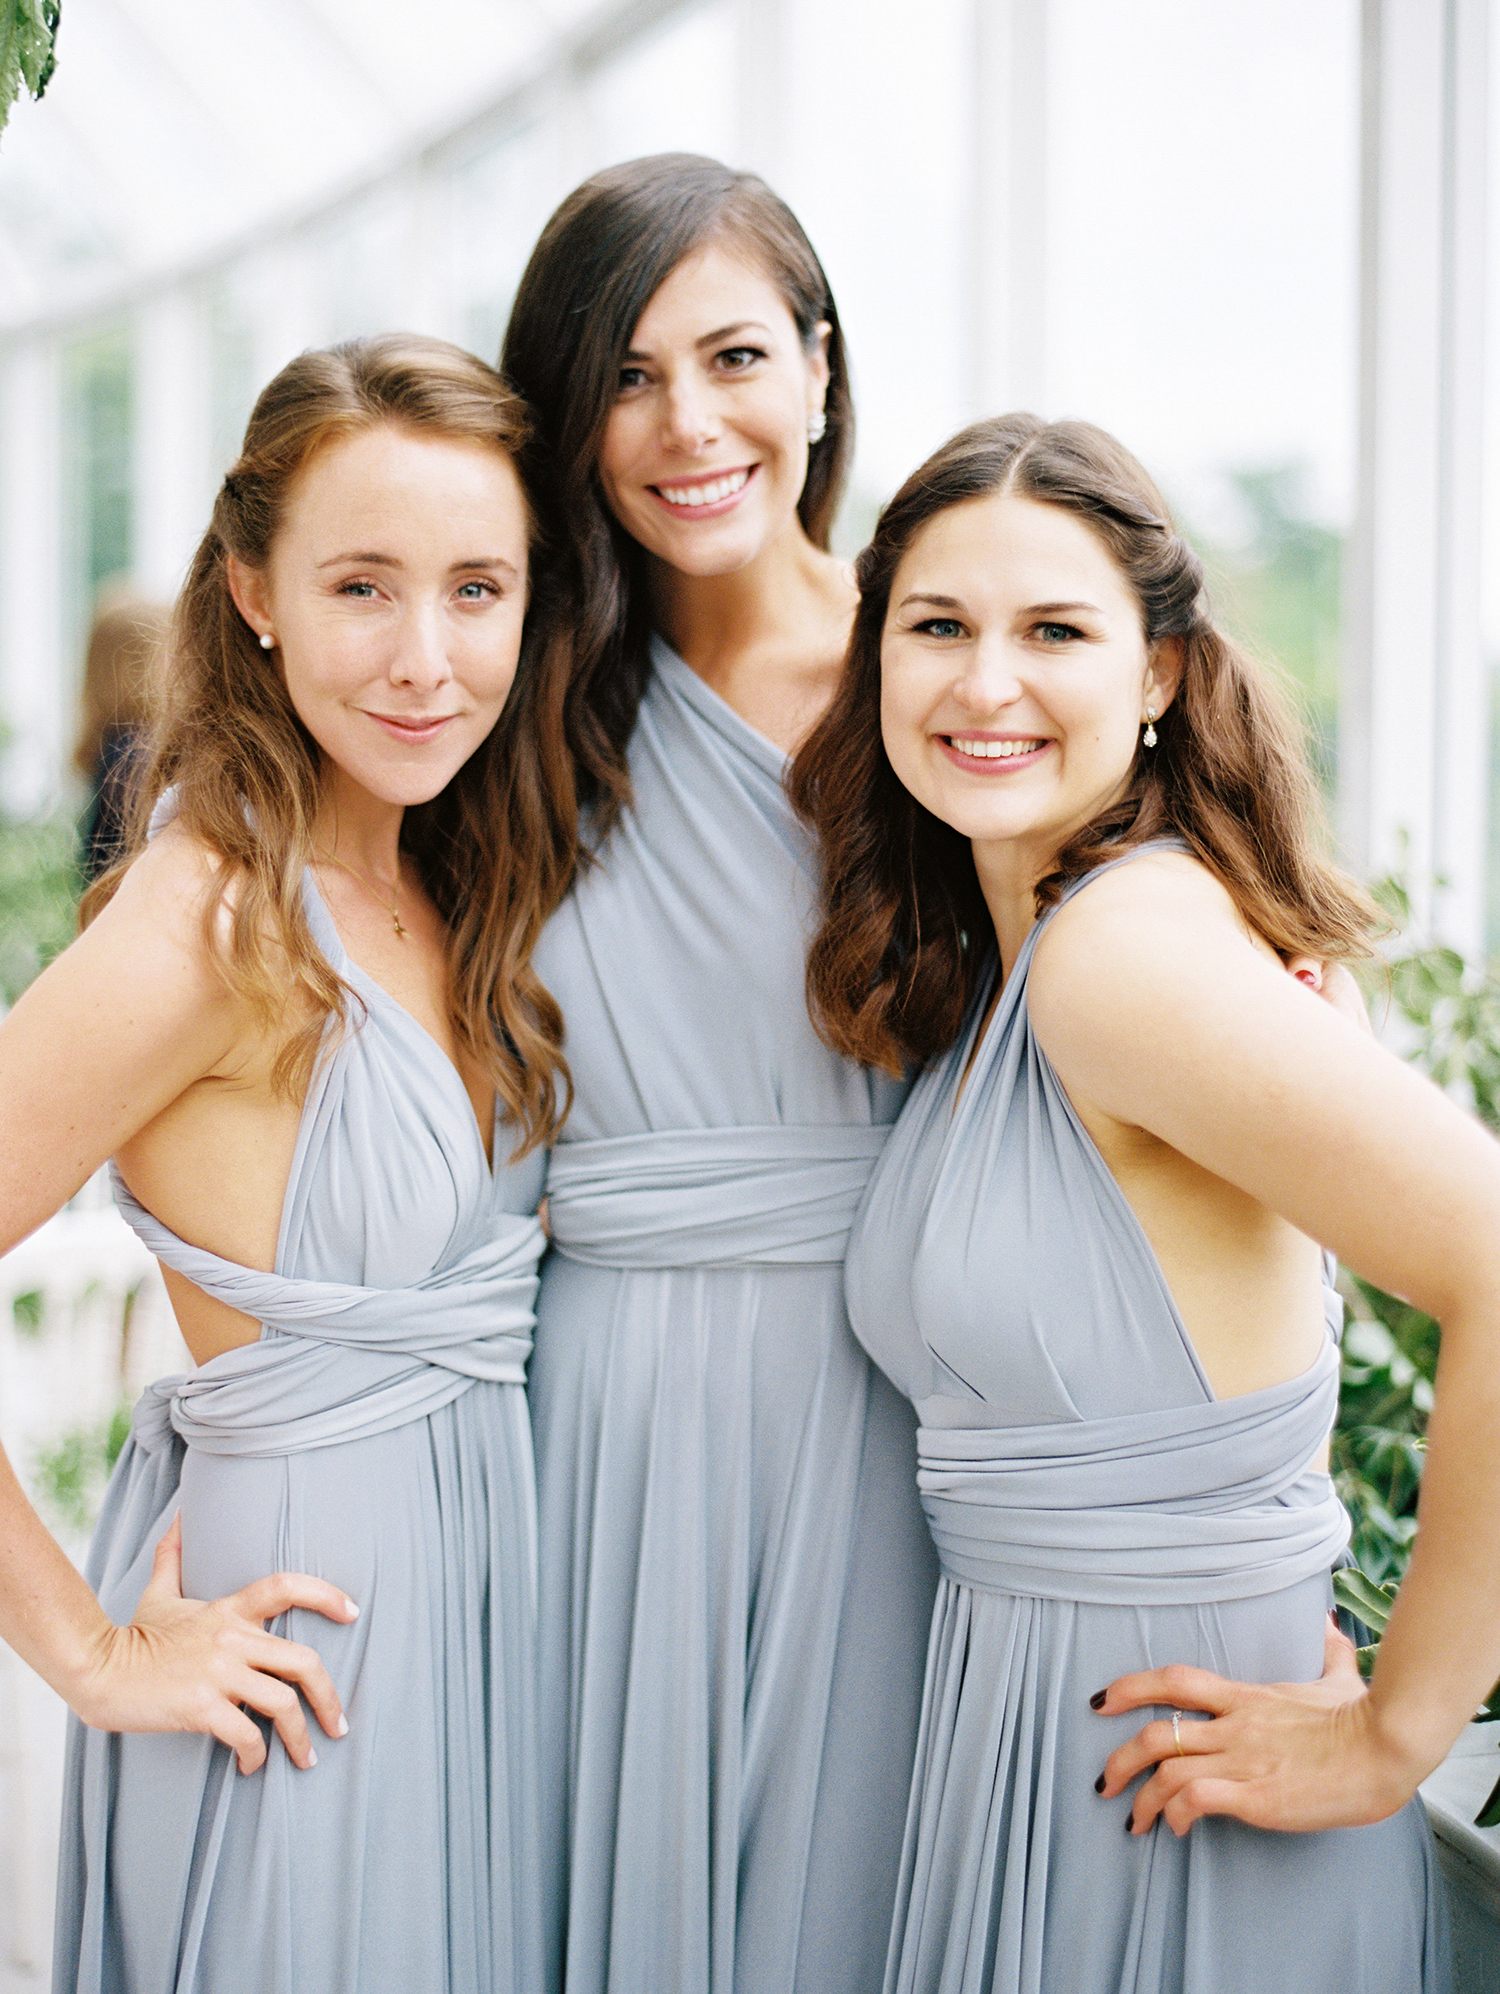 amanda alex wedding three bridesmaids portrait